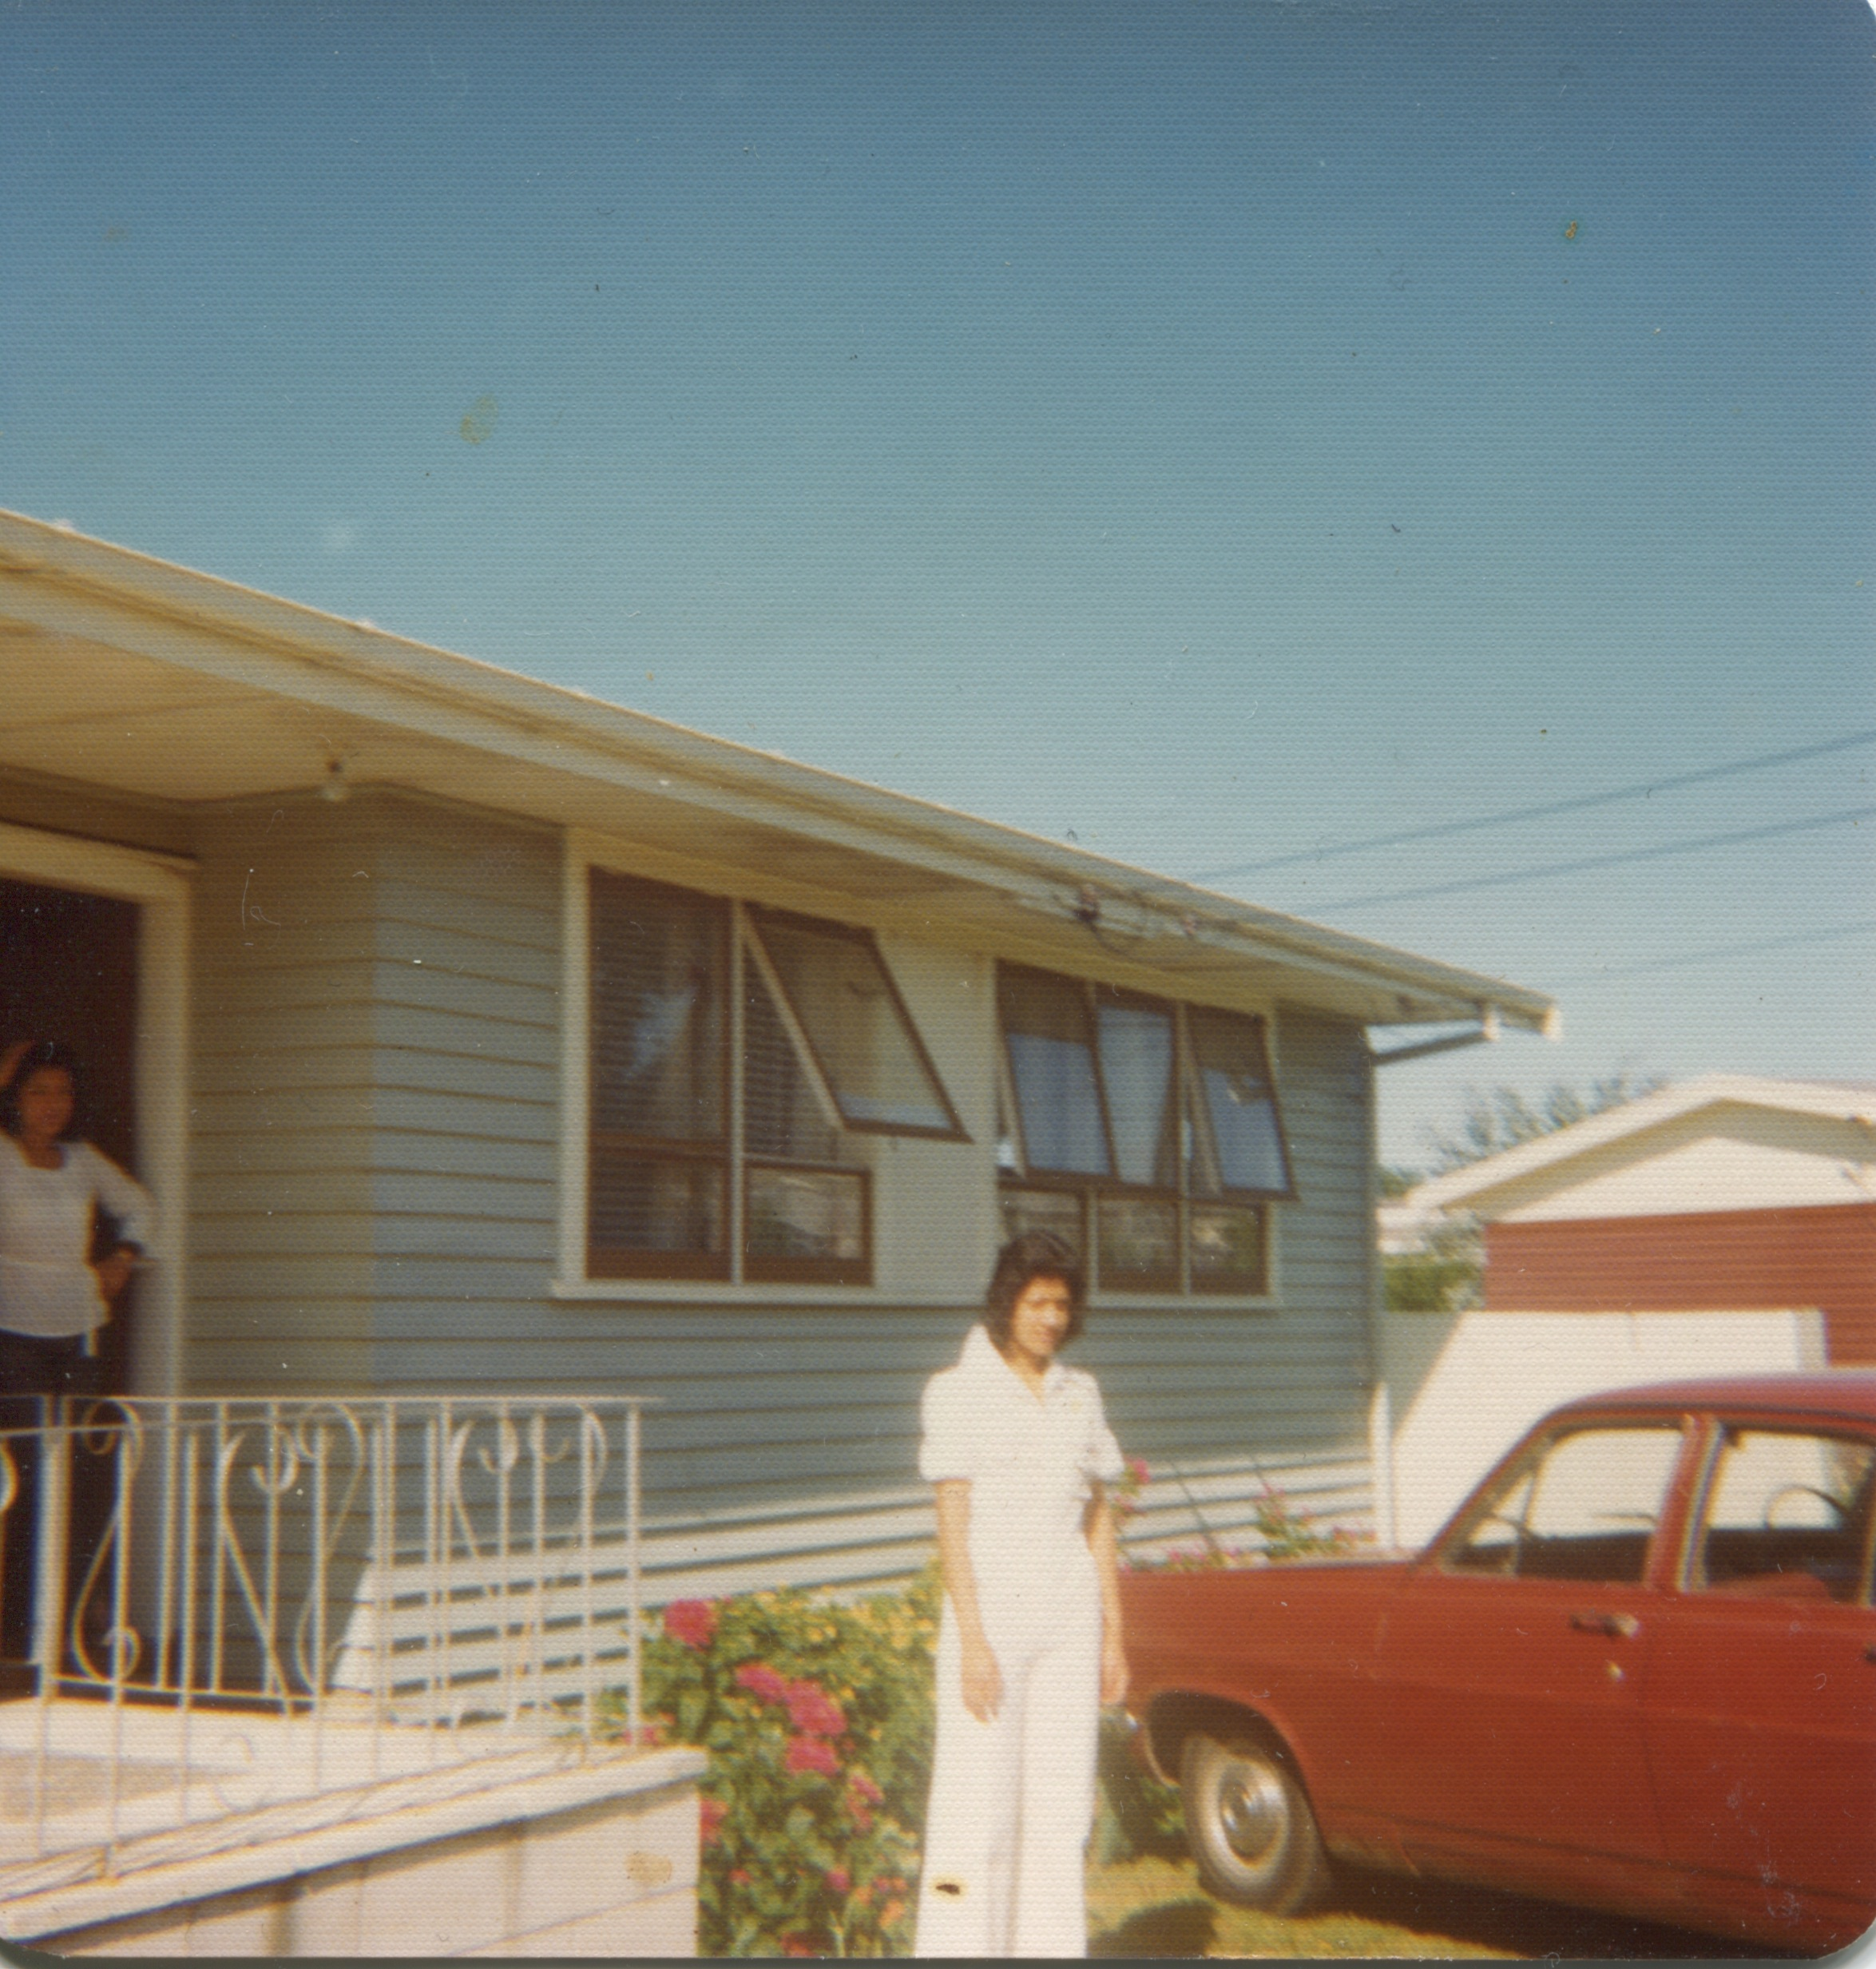 Susan Hawkins stands outside the family home, 290 Rosebank Road. Image credit: Susan Hawkins. 1976.